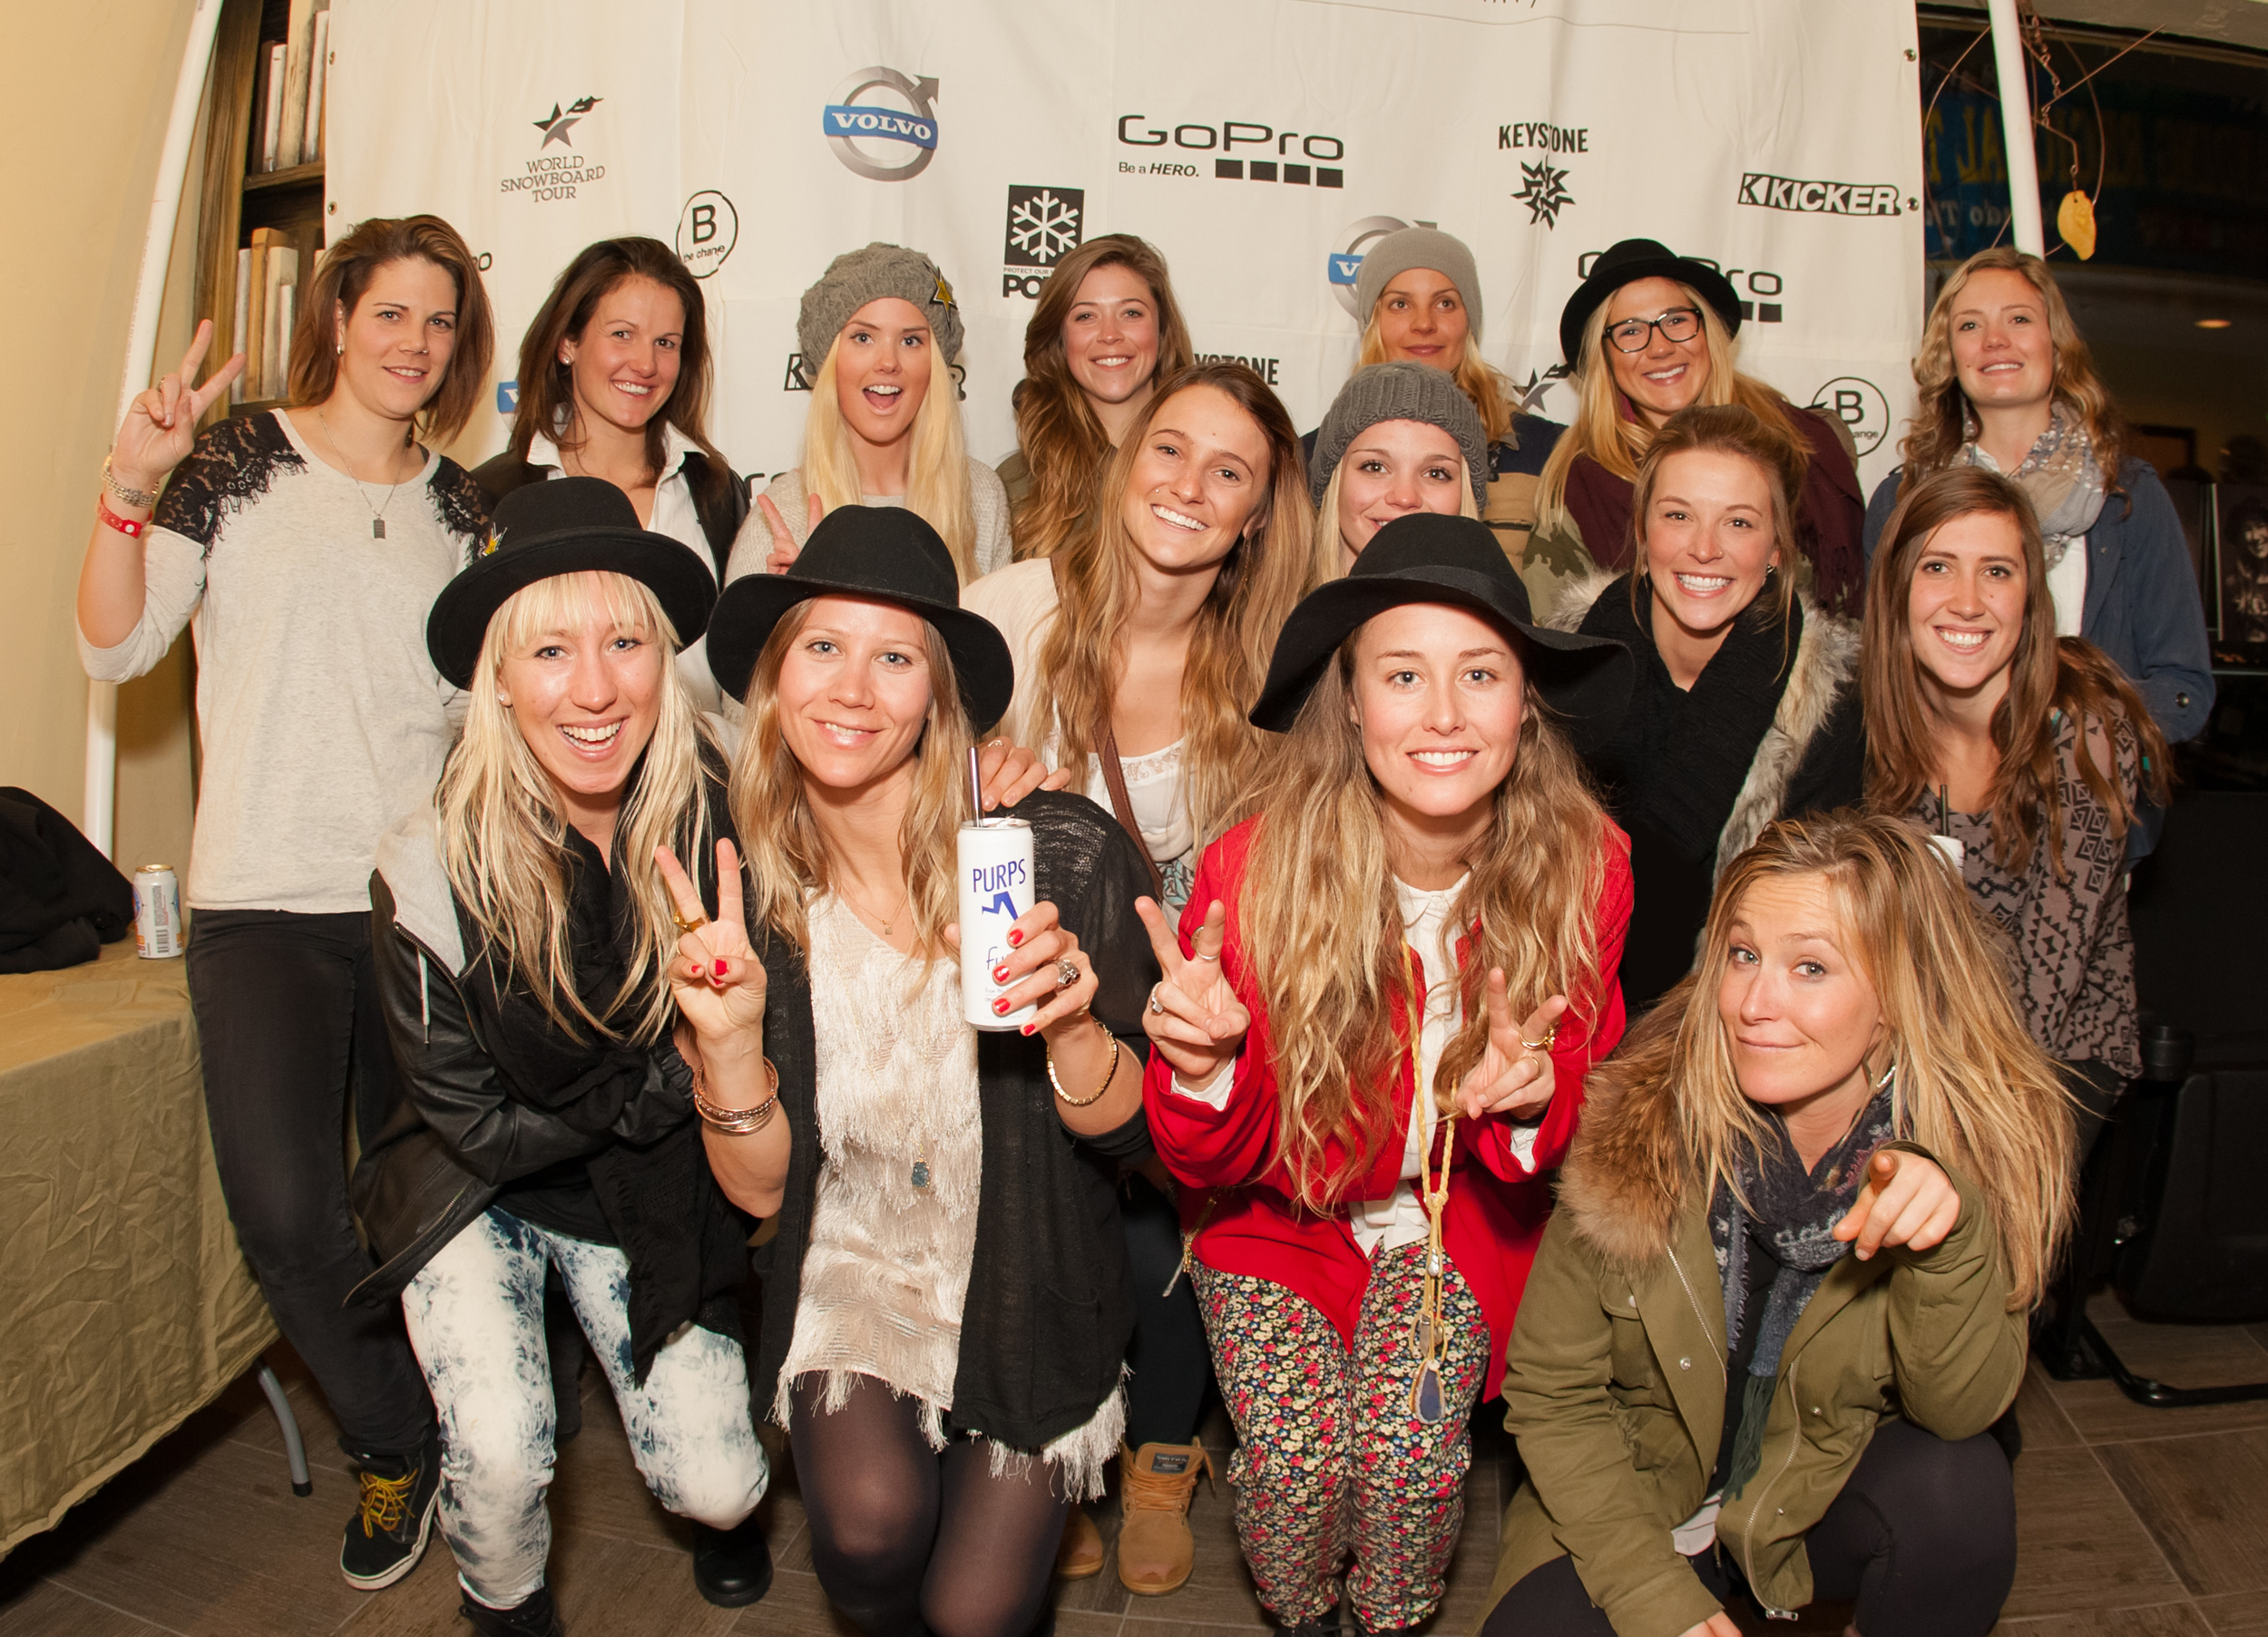 THE LADIES AT THE PREMIERE IN BRECKENRIDGE, CO--->> CLICK ON PHOTO TO READ MORE ABOUT COMMUNITY CUP